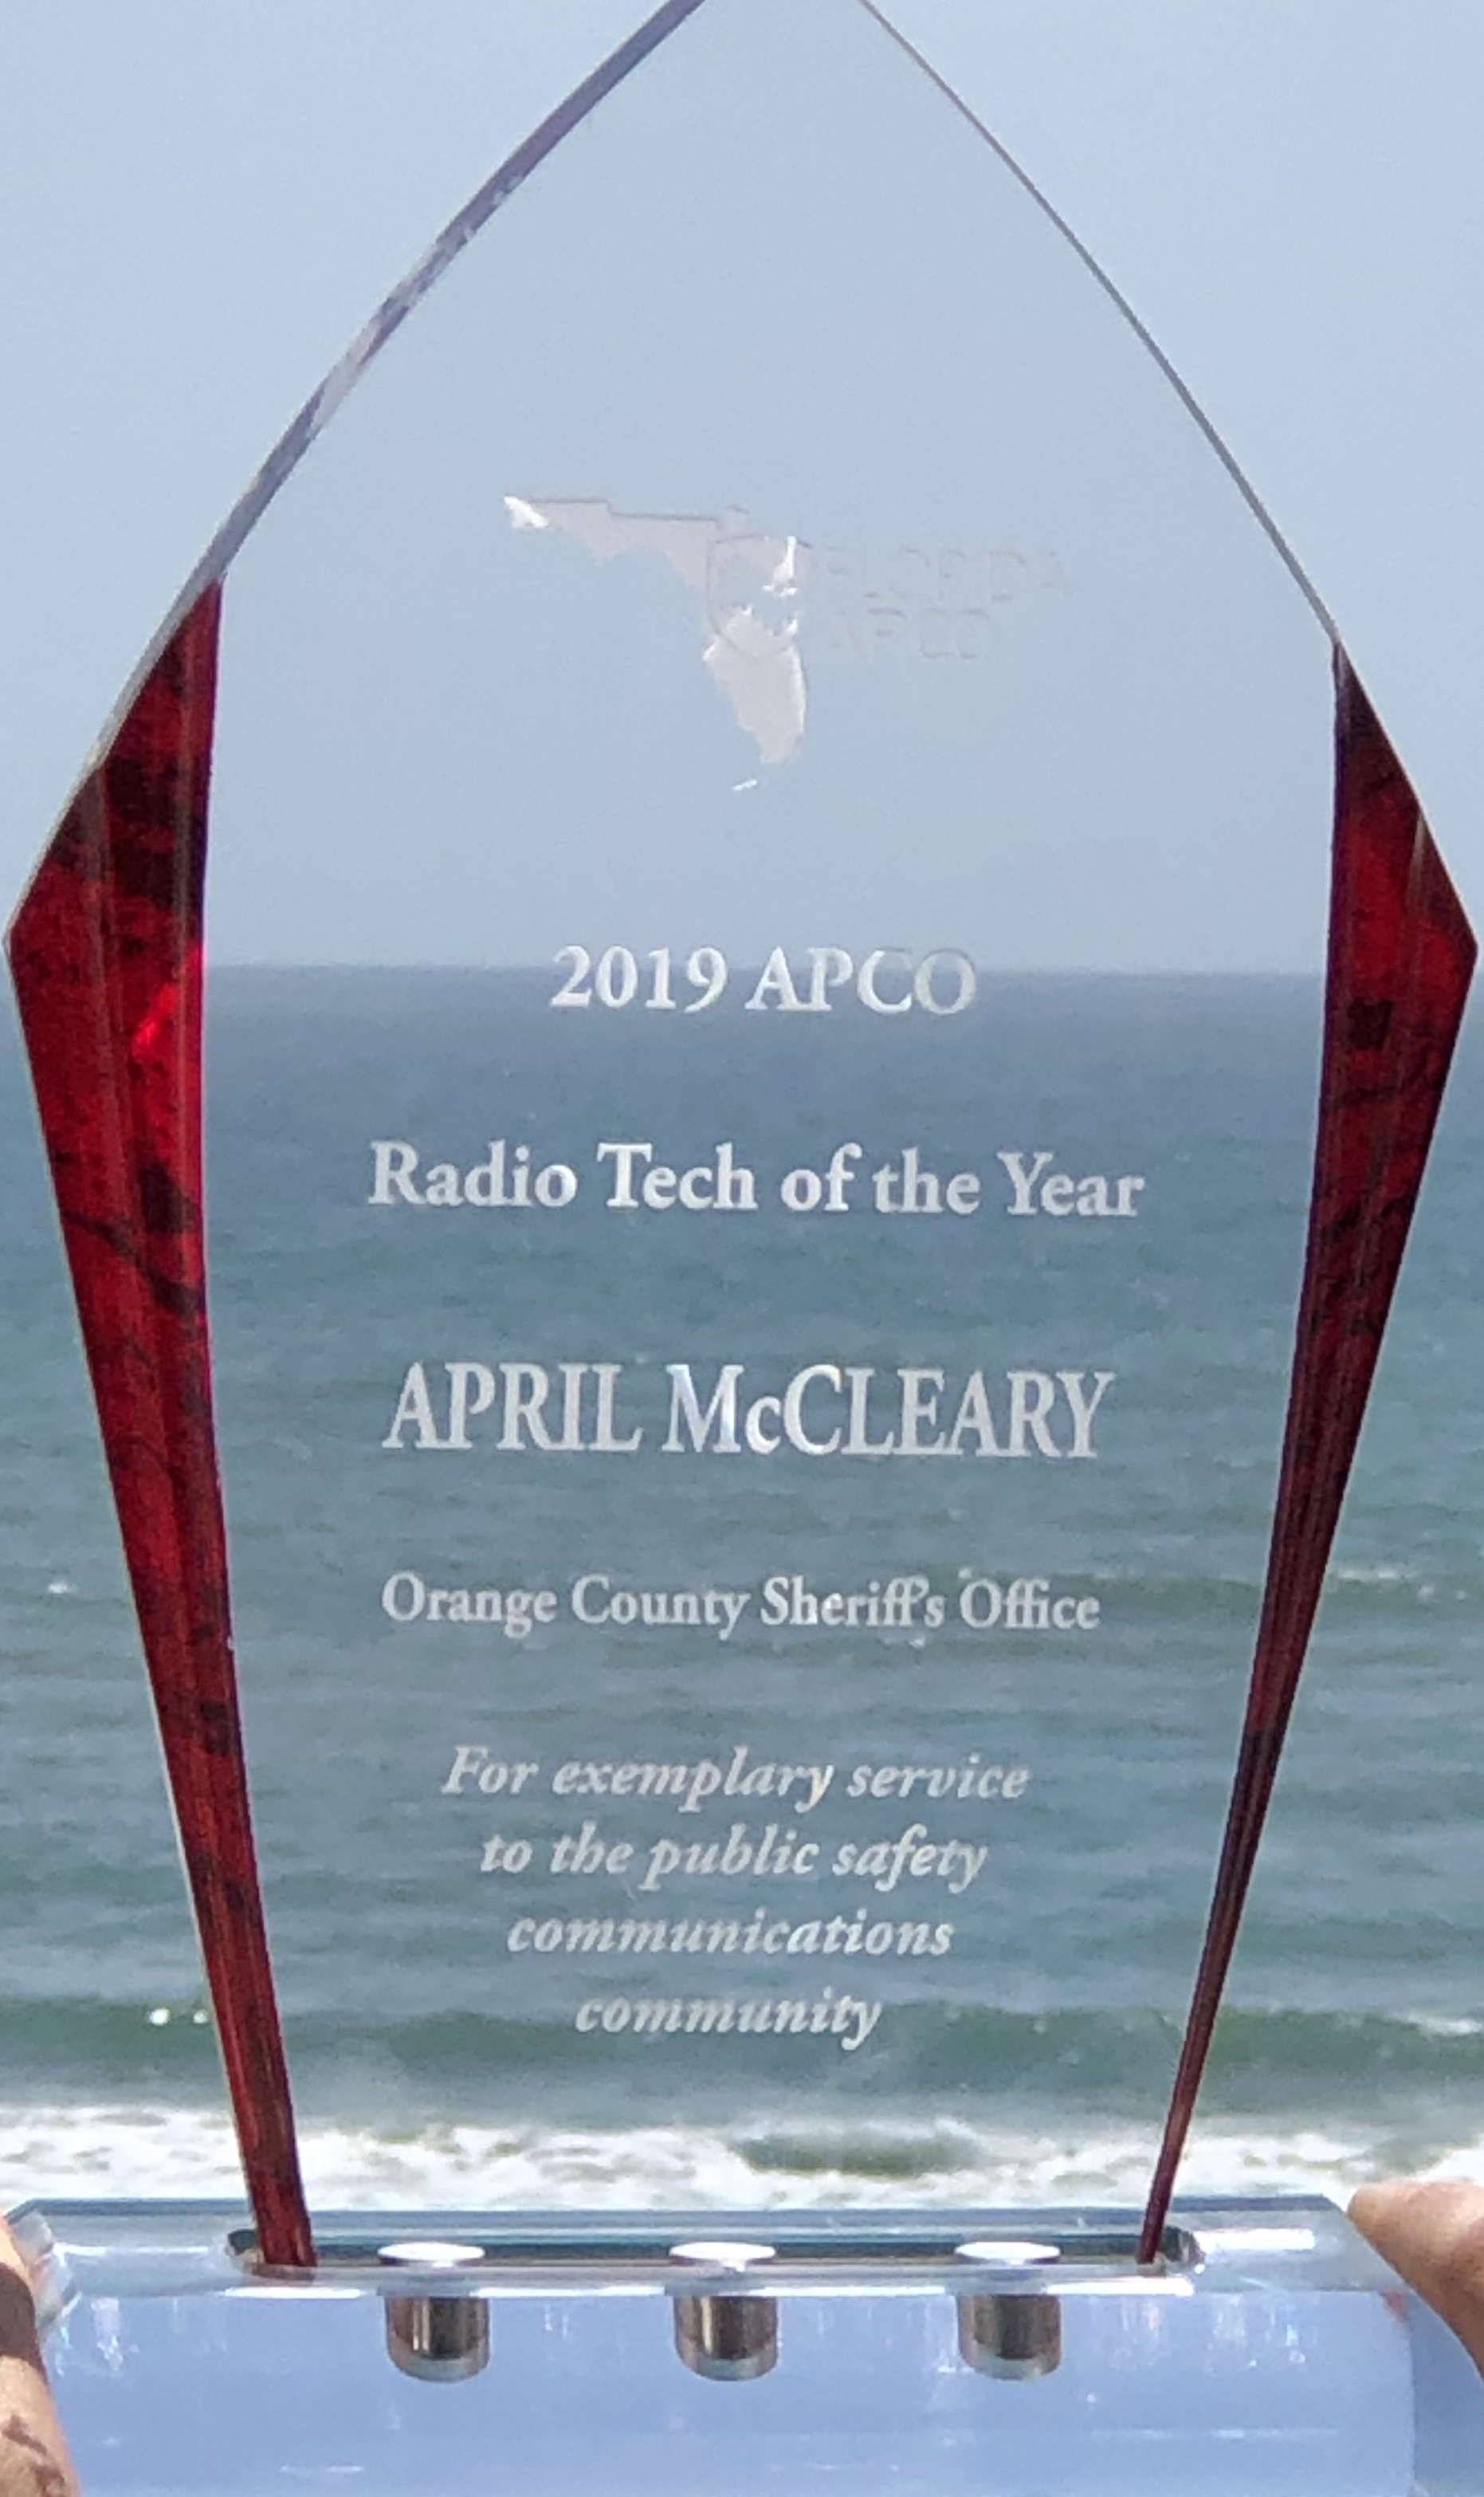 Radio Tech of the Year- April McCleary 2019 Award